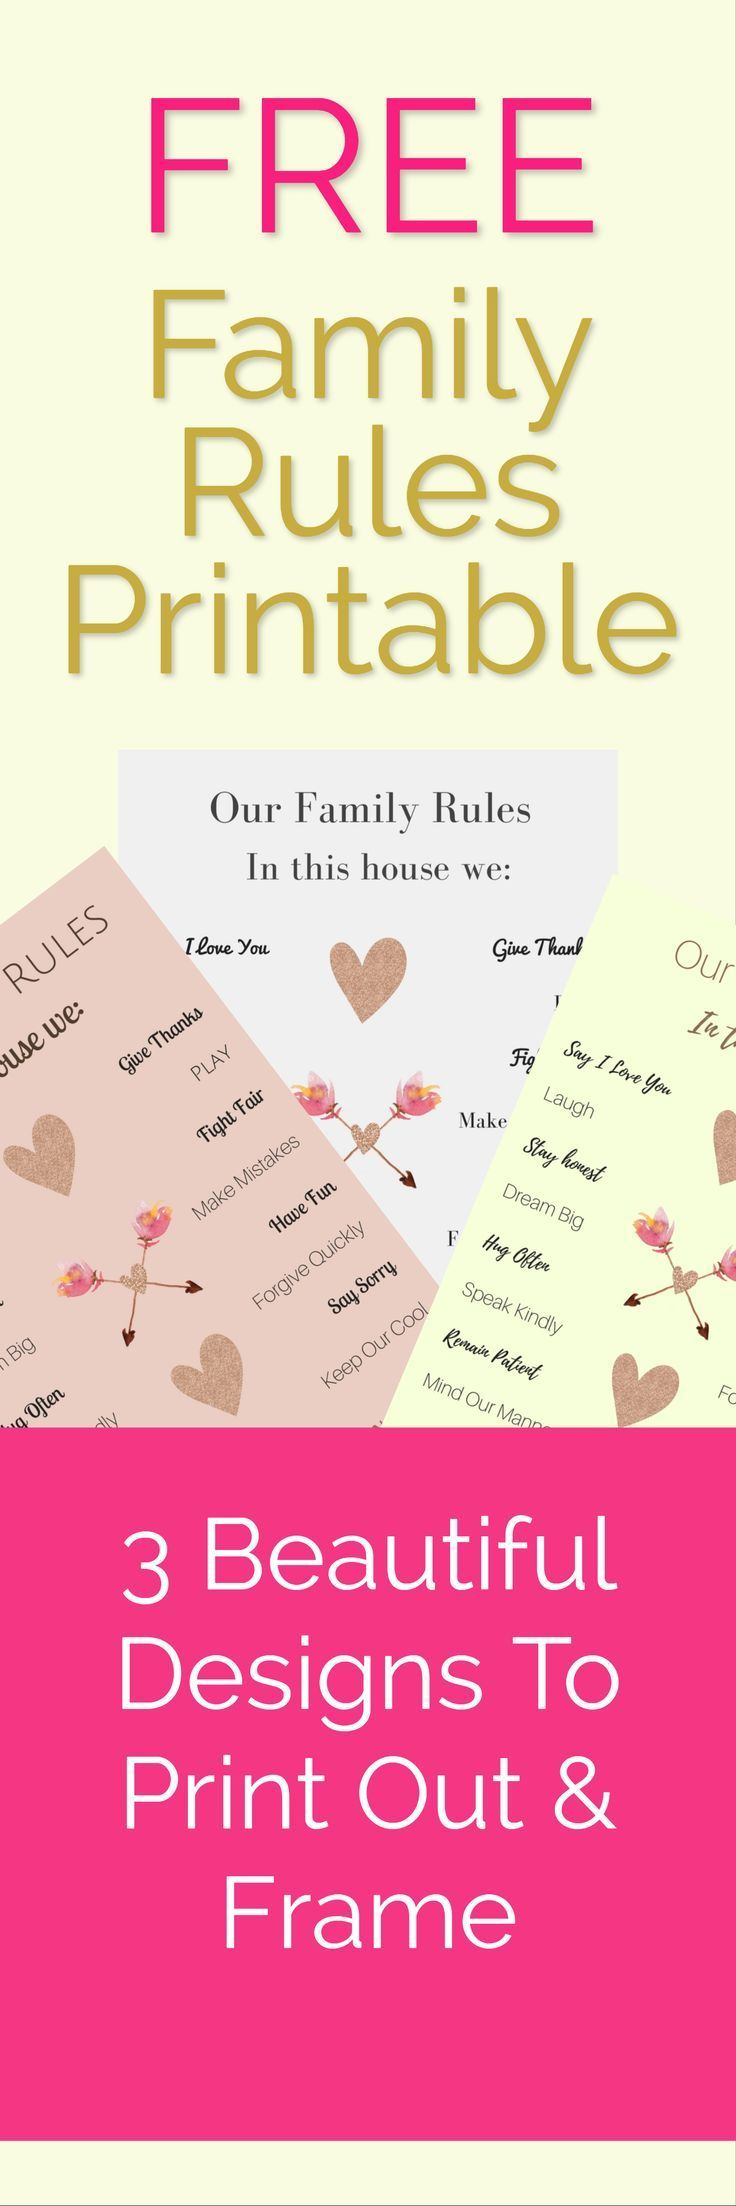 Pin by Barbara Townsend on family Family rules printable